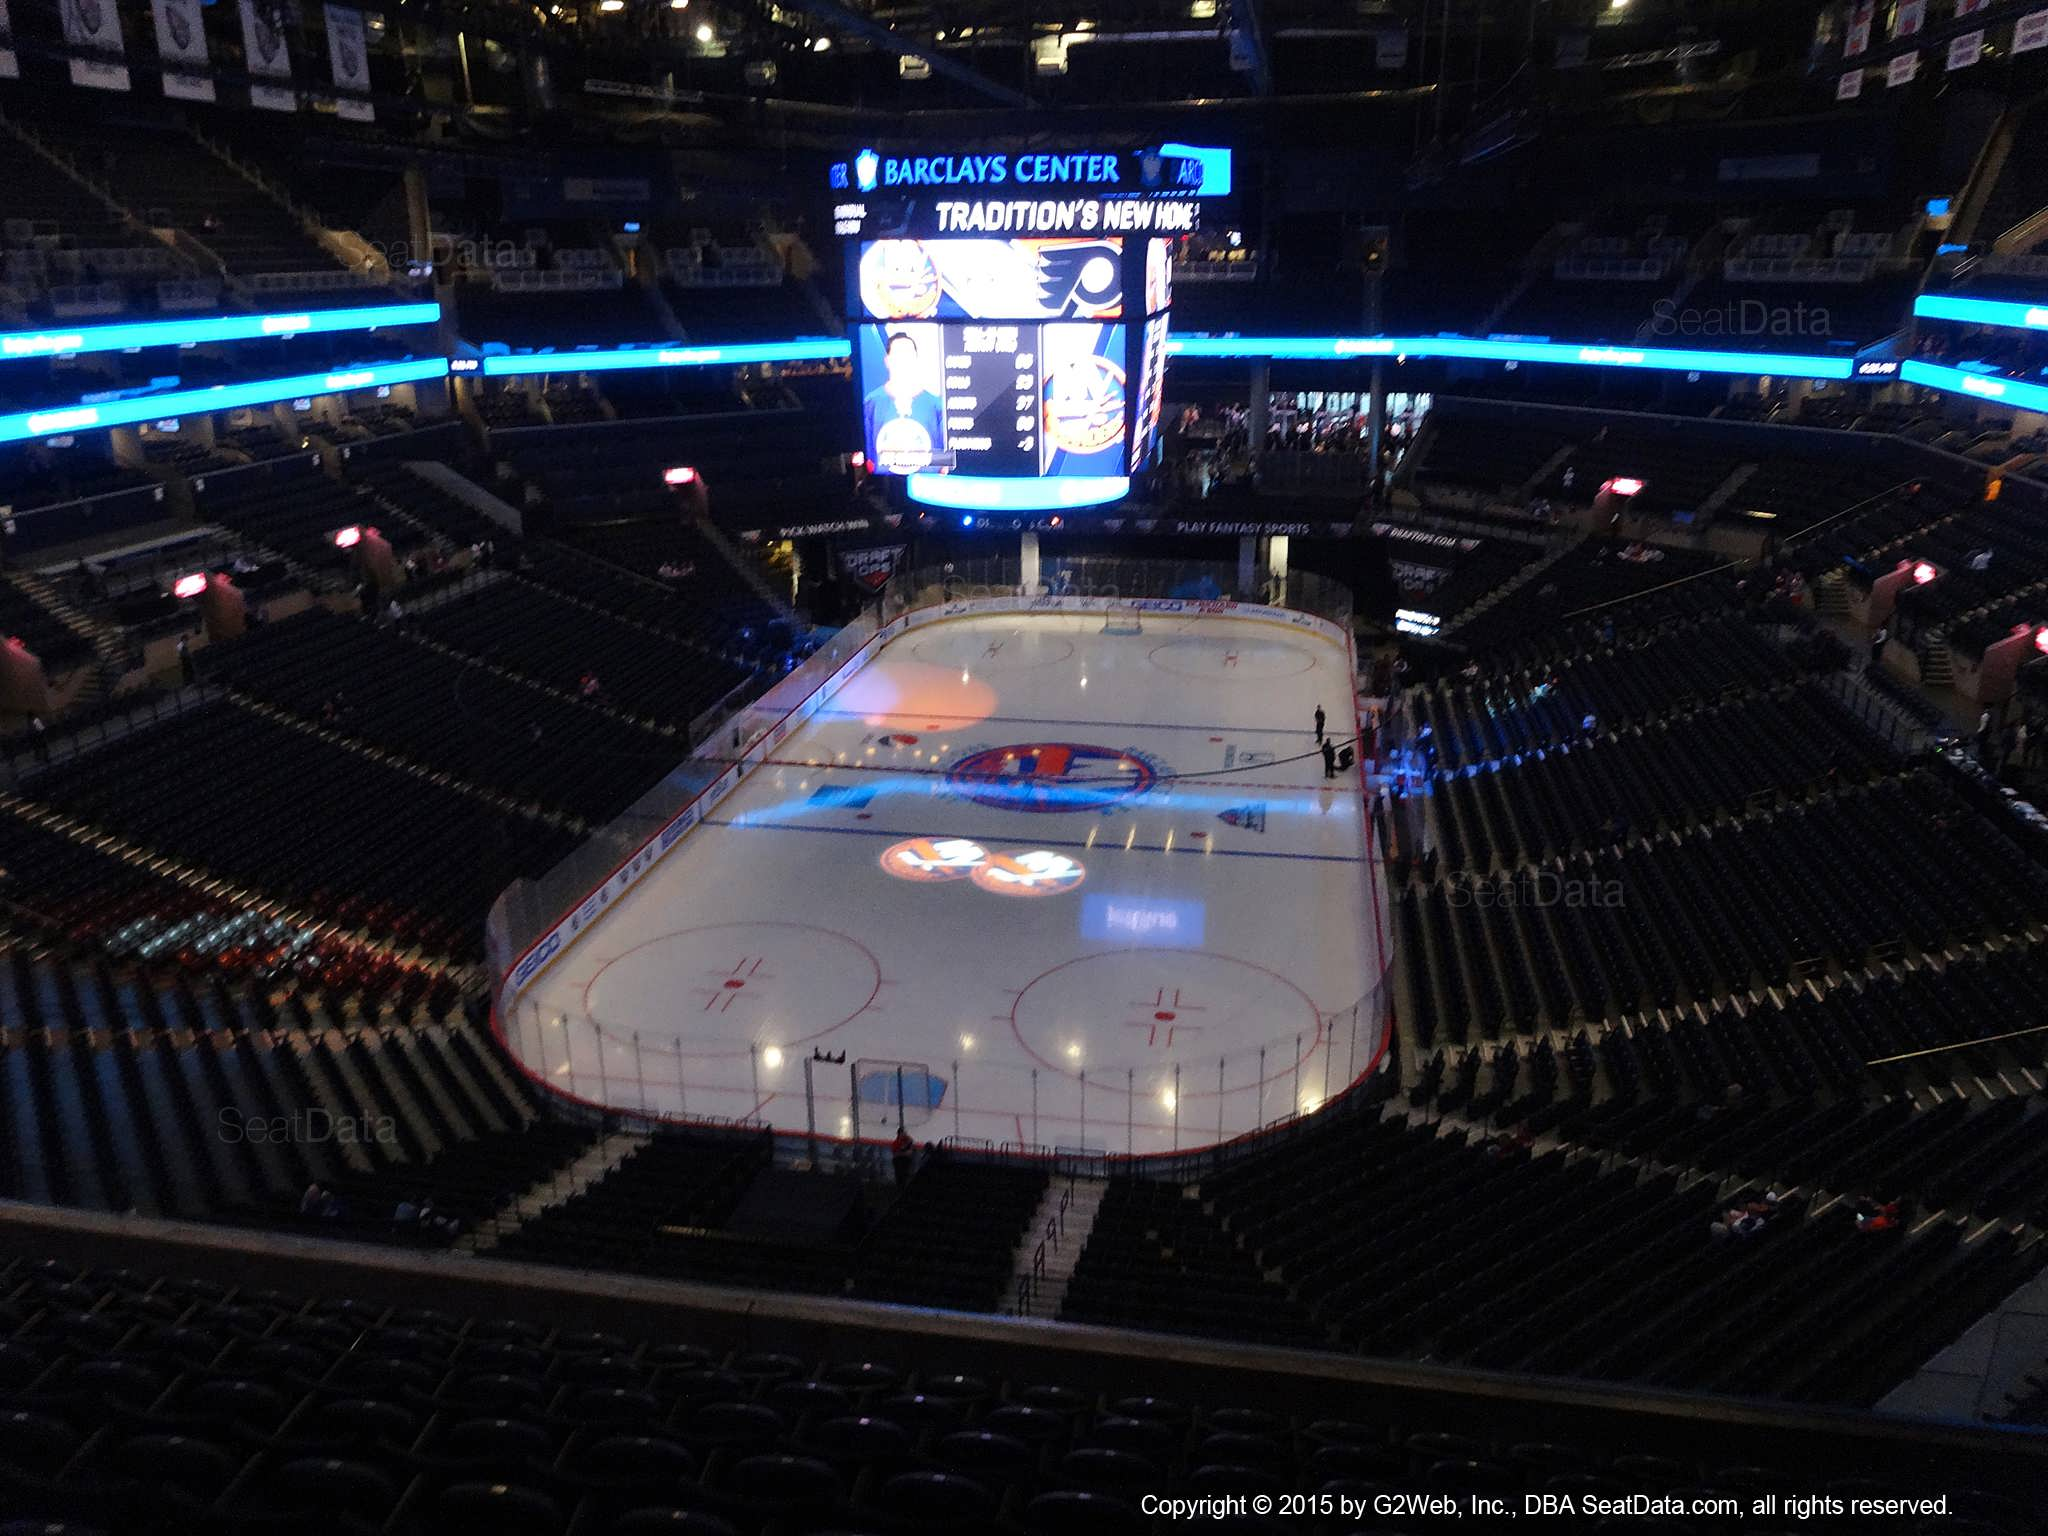 Seat View from Section 215 at the Barclays Center, home of the New York Islanders